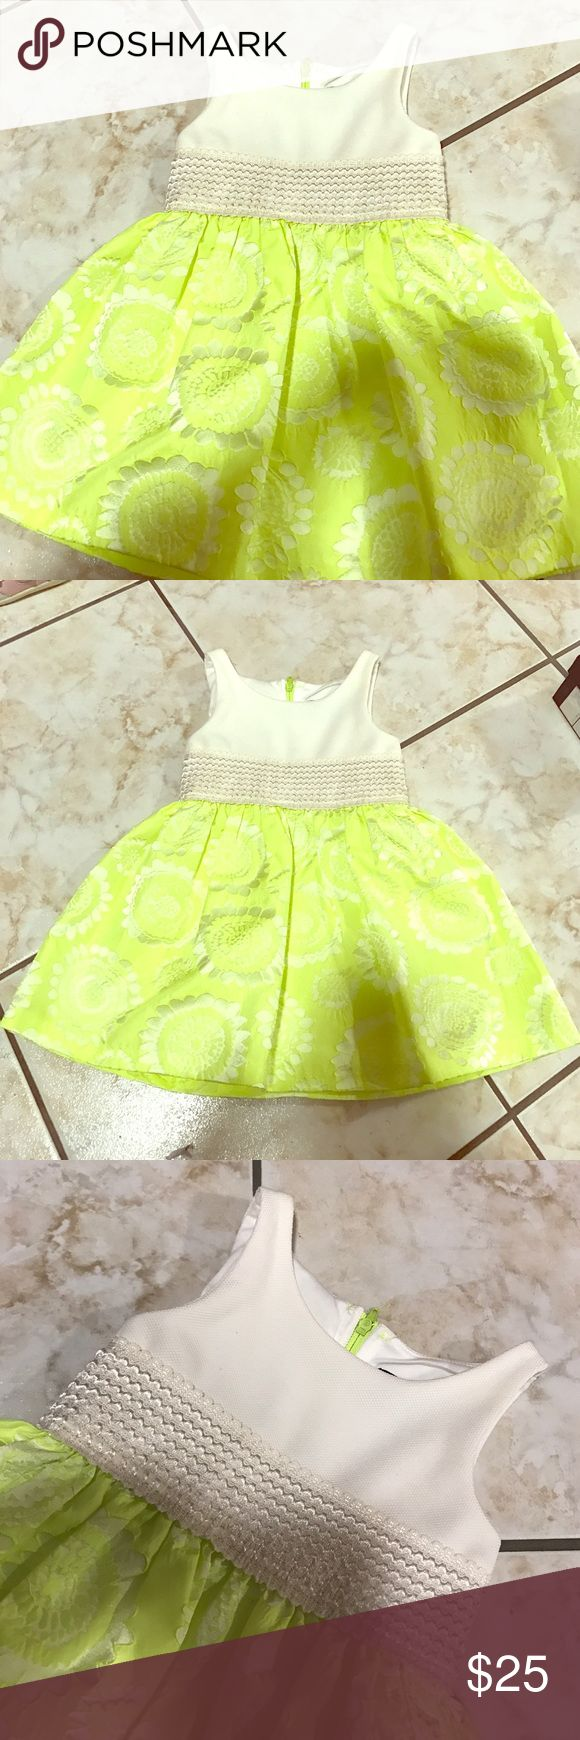 Neon Yellow Dress Super cute neon yellow dress for any occasion. Size 12 Months. In Great Condition, Worn Once. Abs Kids Dresses Casual